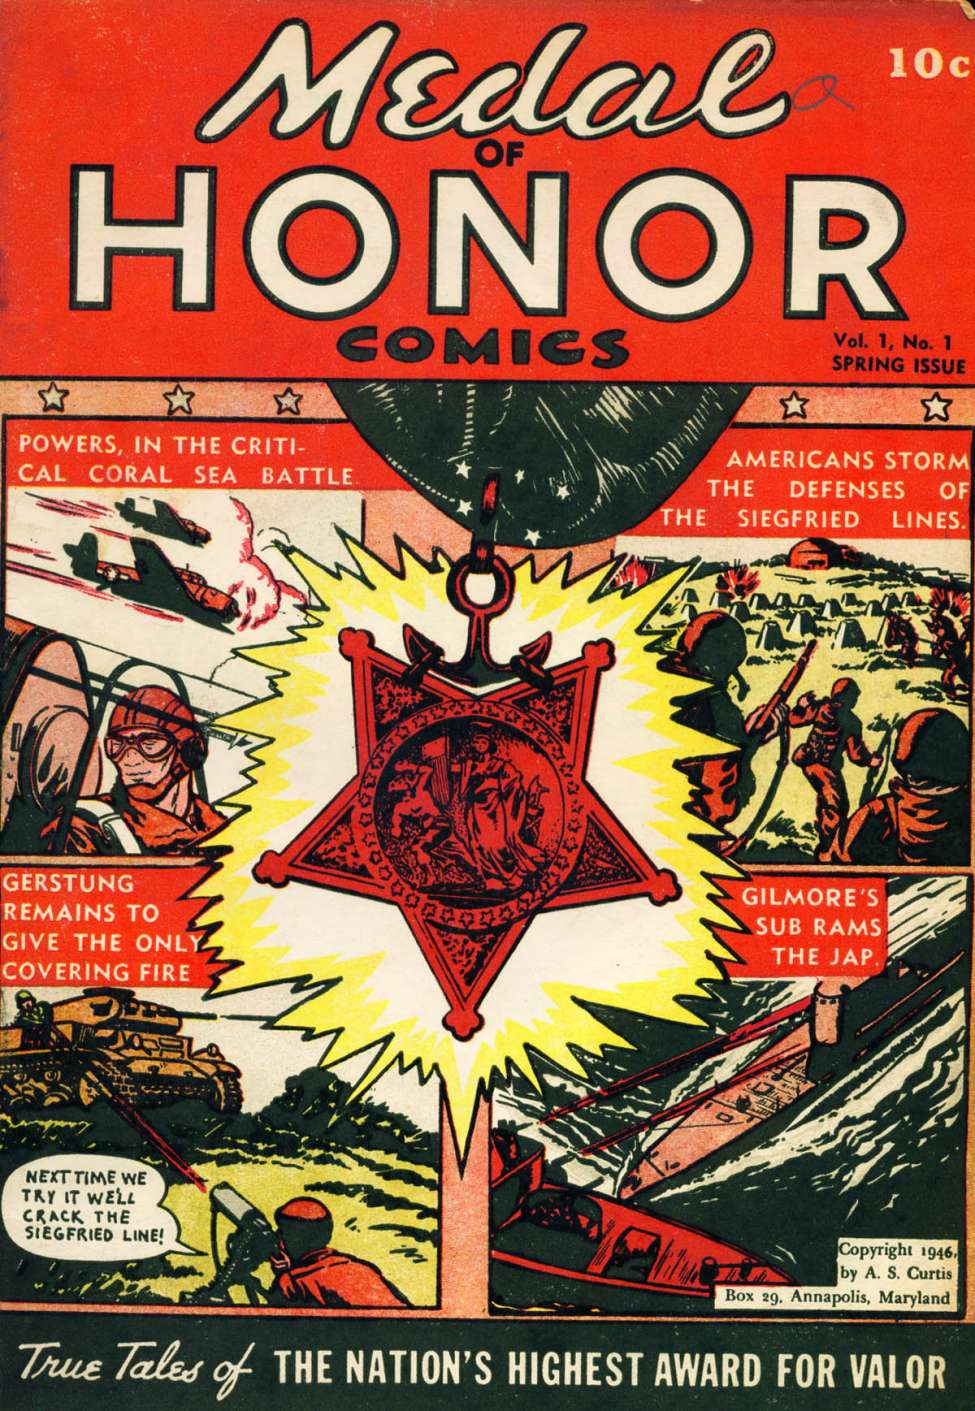 Comic Book Cover For Medal of Honor Comics #1